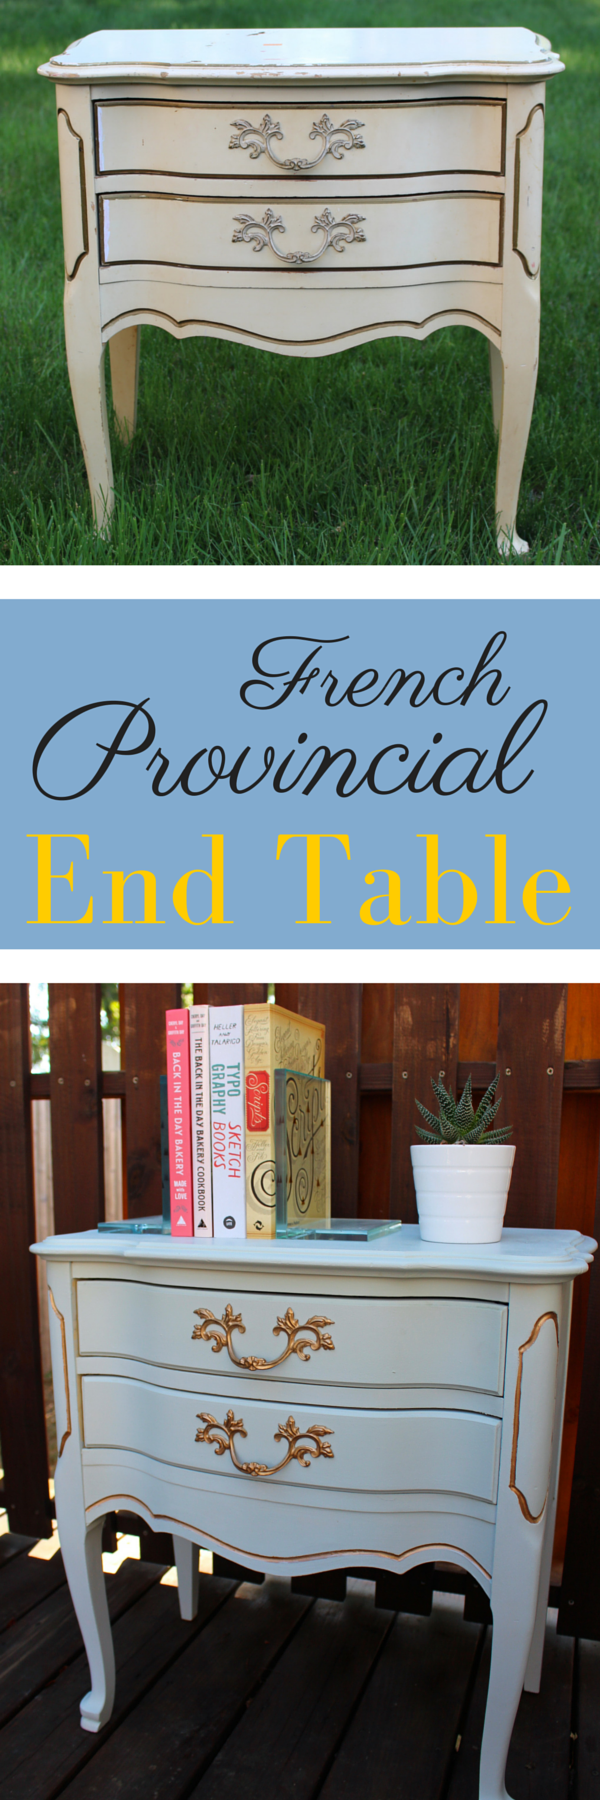 French Provinicial End Table